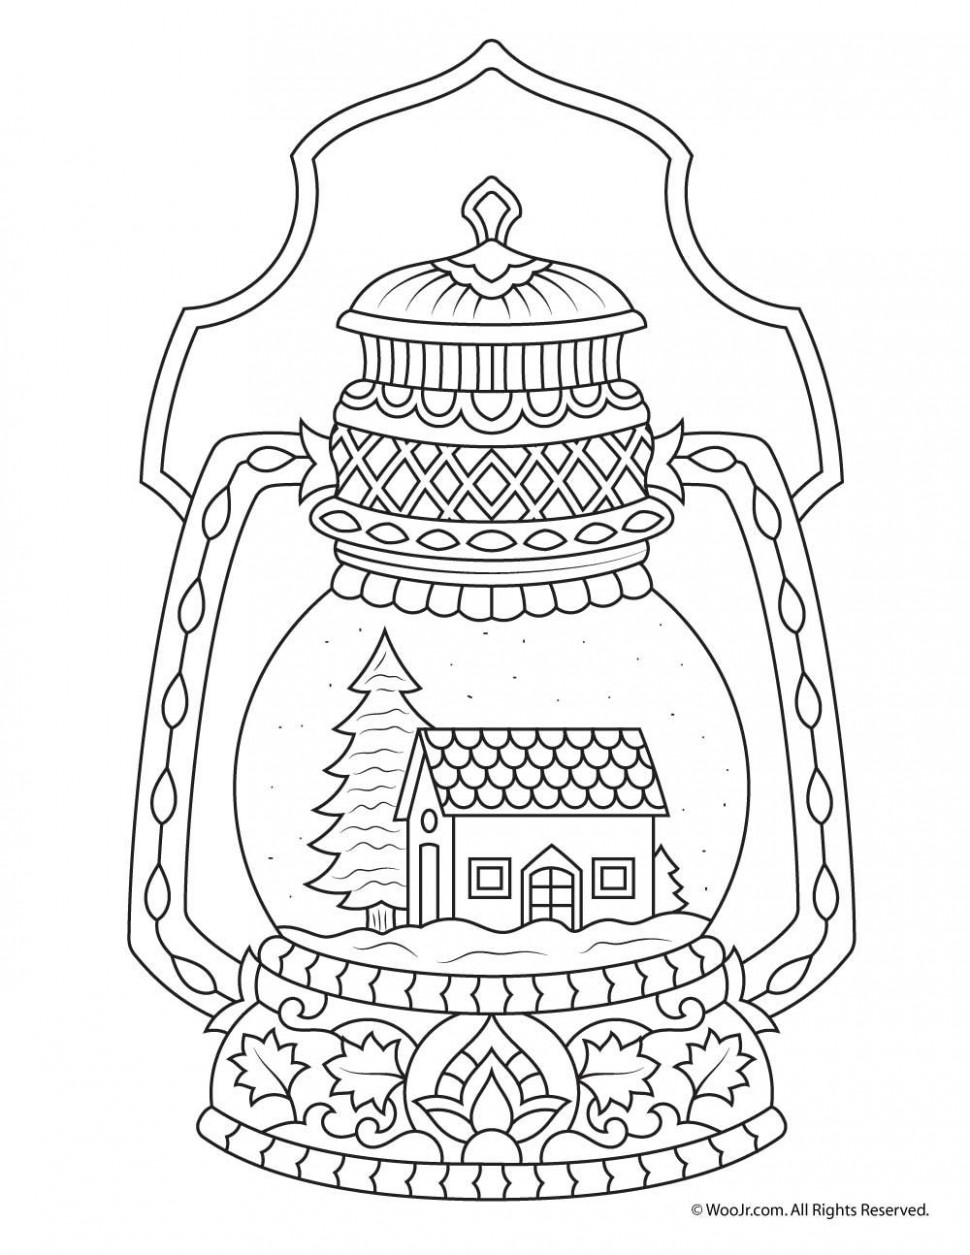 Winter Snow Globe Adult Coloring Page Christmas Easter At - baby-boom.me